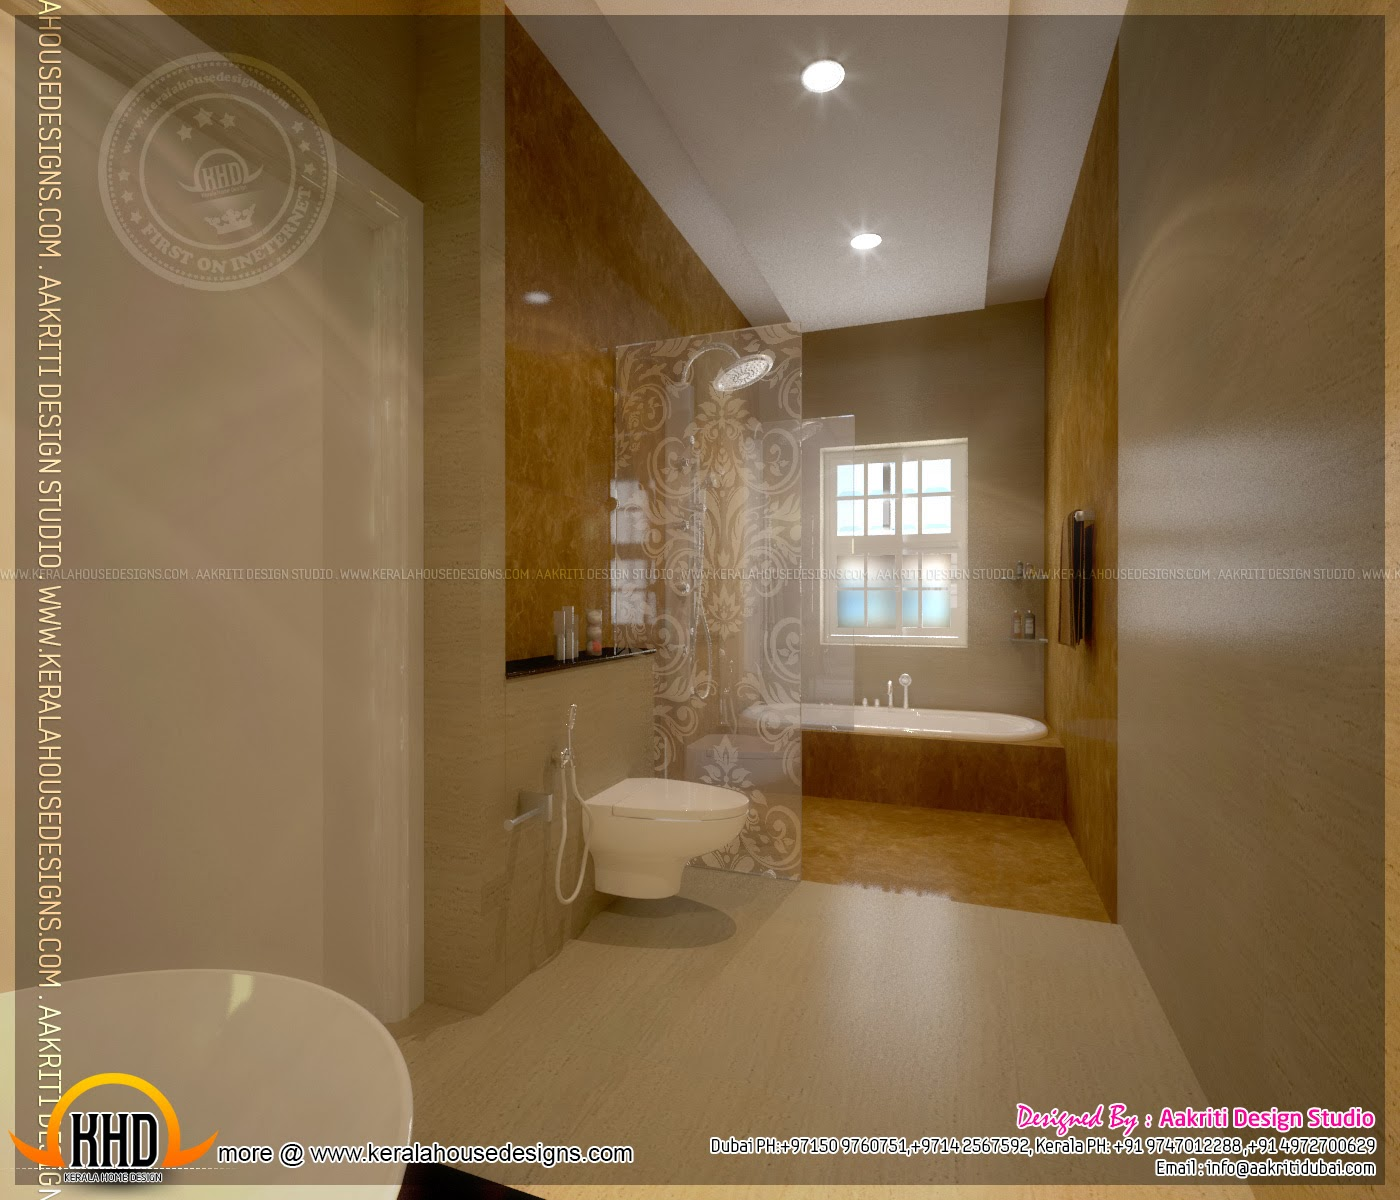 Master bedroom and bathroom interior design kerala home for Bathroom interior design kerala